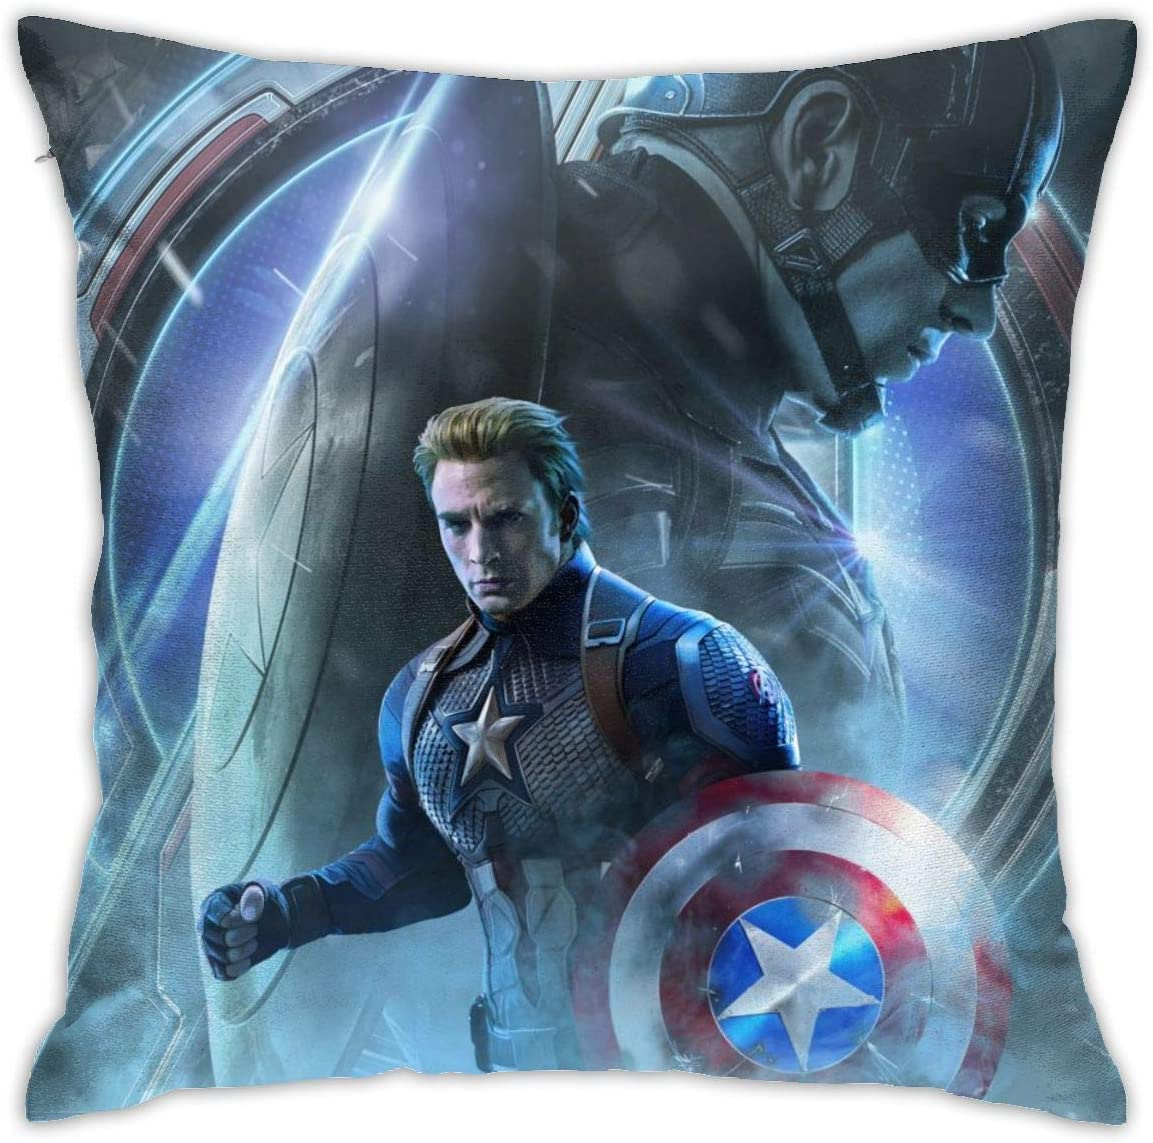 Popularity Aven-Ger Max 58% OFF Decorative Throw Pillow Cushion Cover Cov